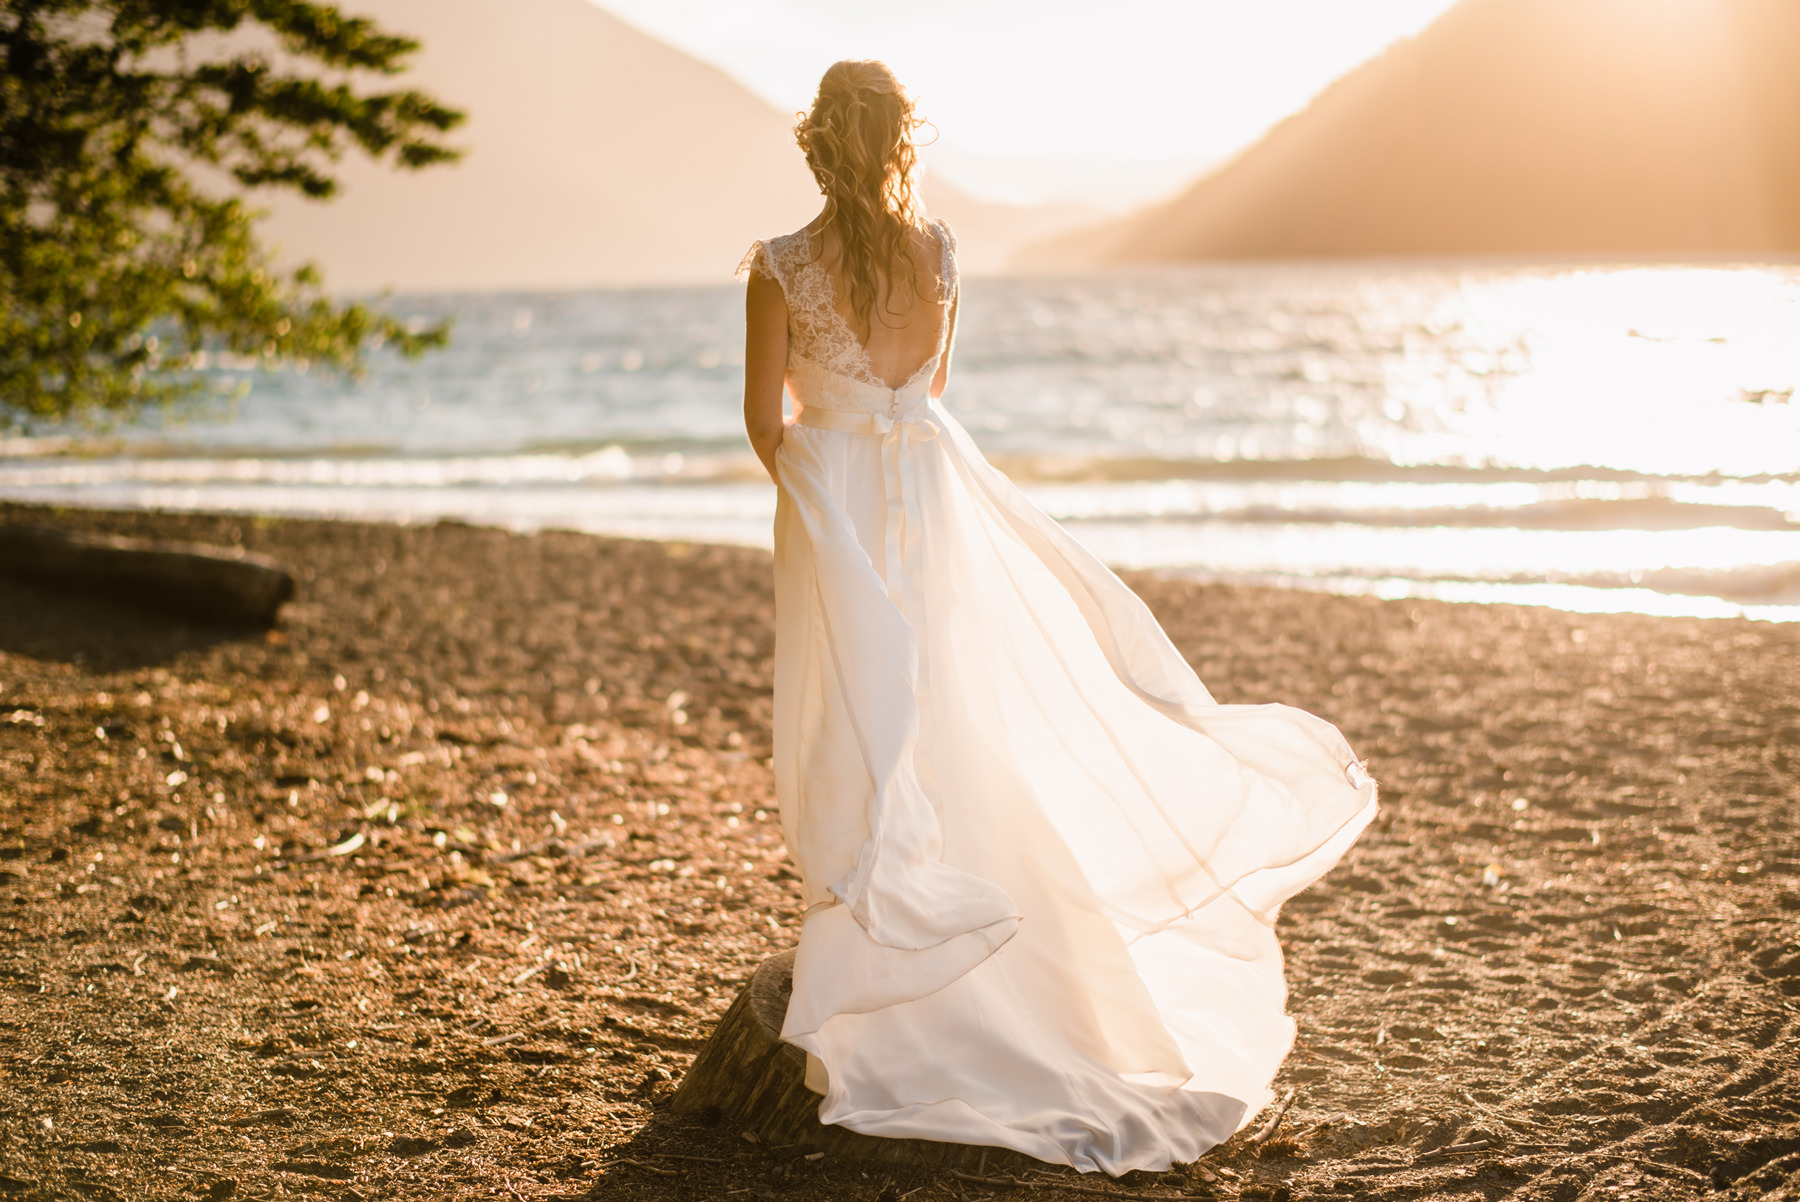 176-fine-art-film-wedding-portraits-at-nature-bride-near-the-lake-crescent-lodge.jpg